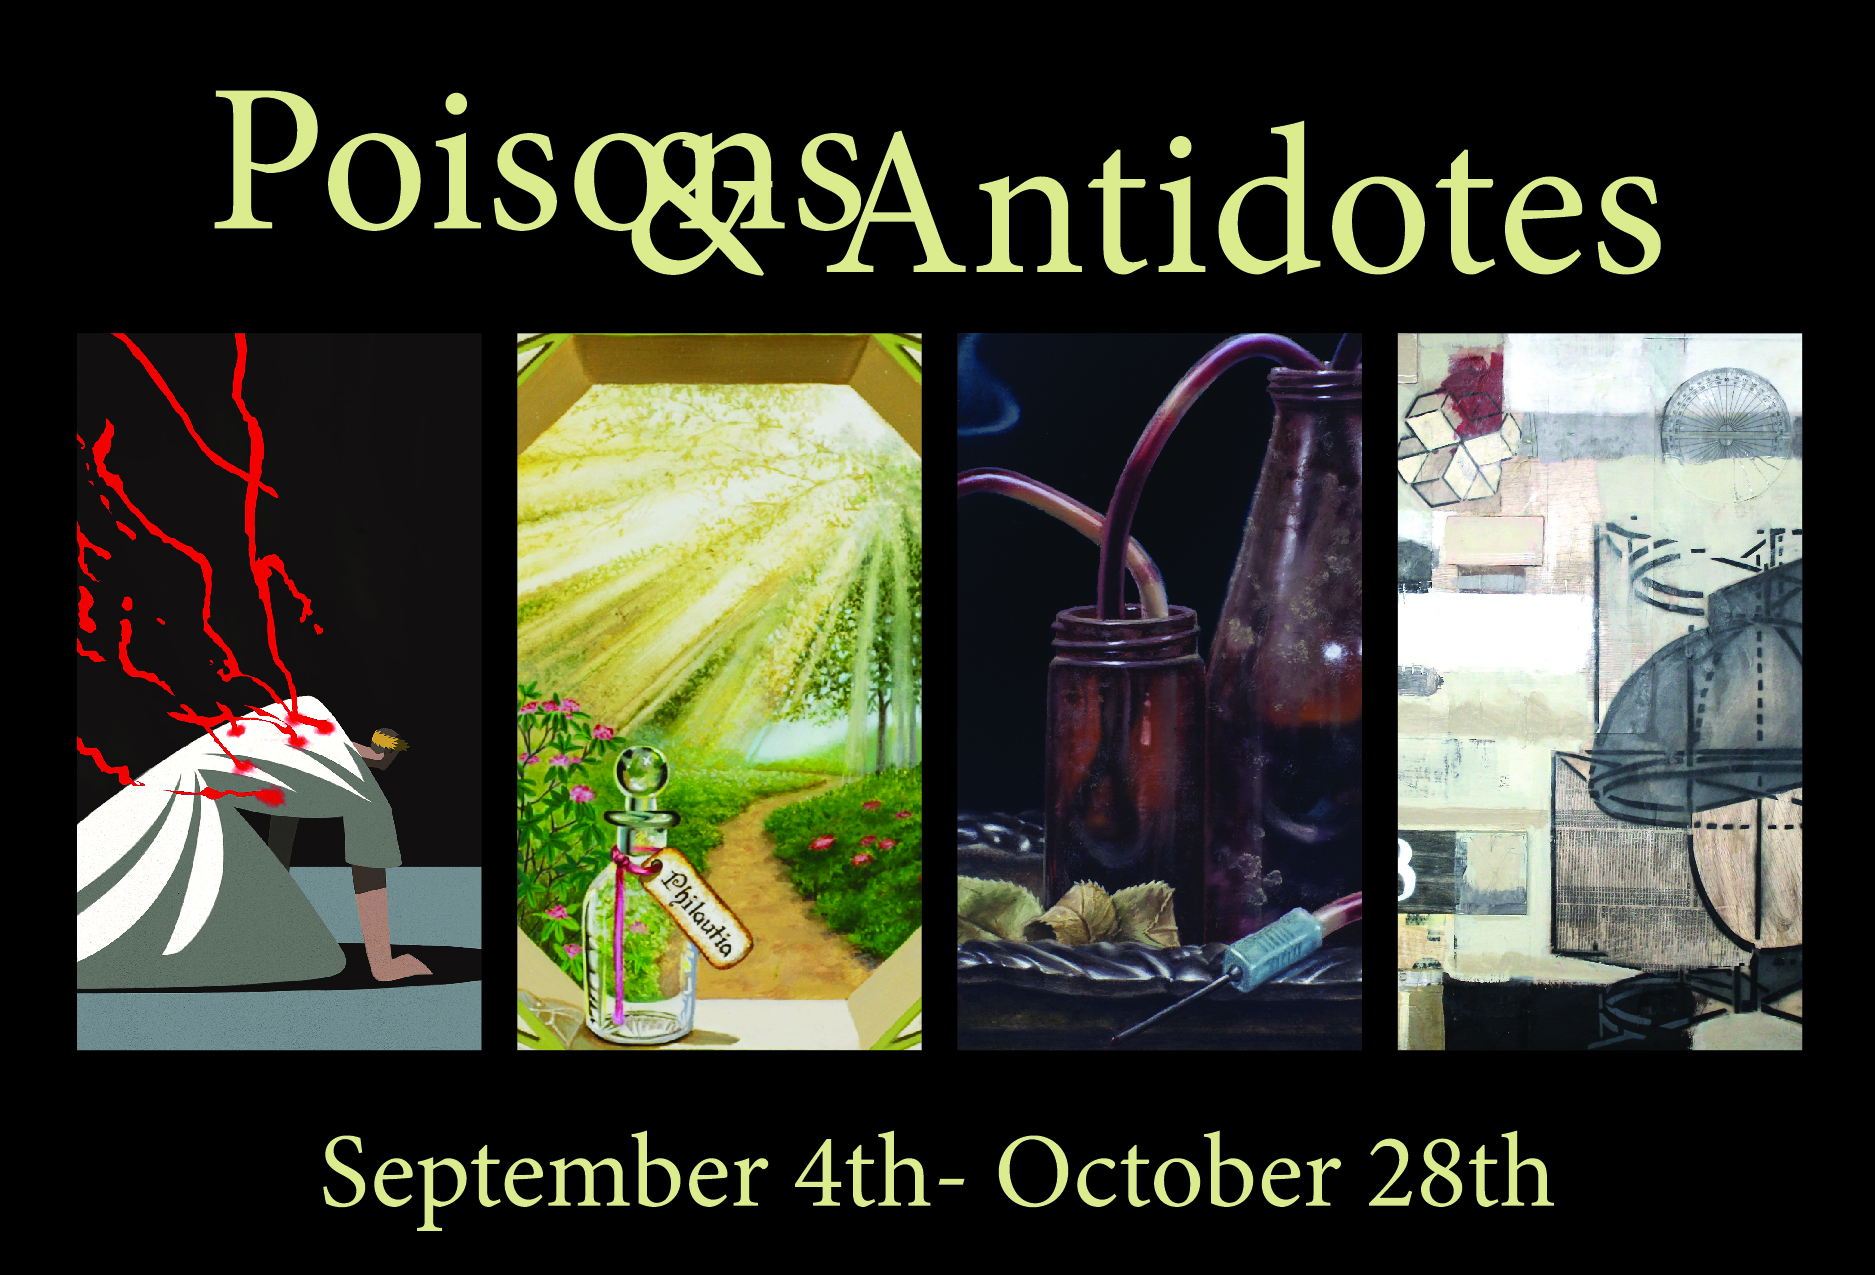 poisons and antidotes postcard-01.jpg